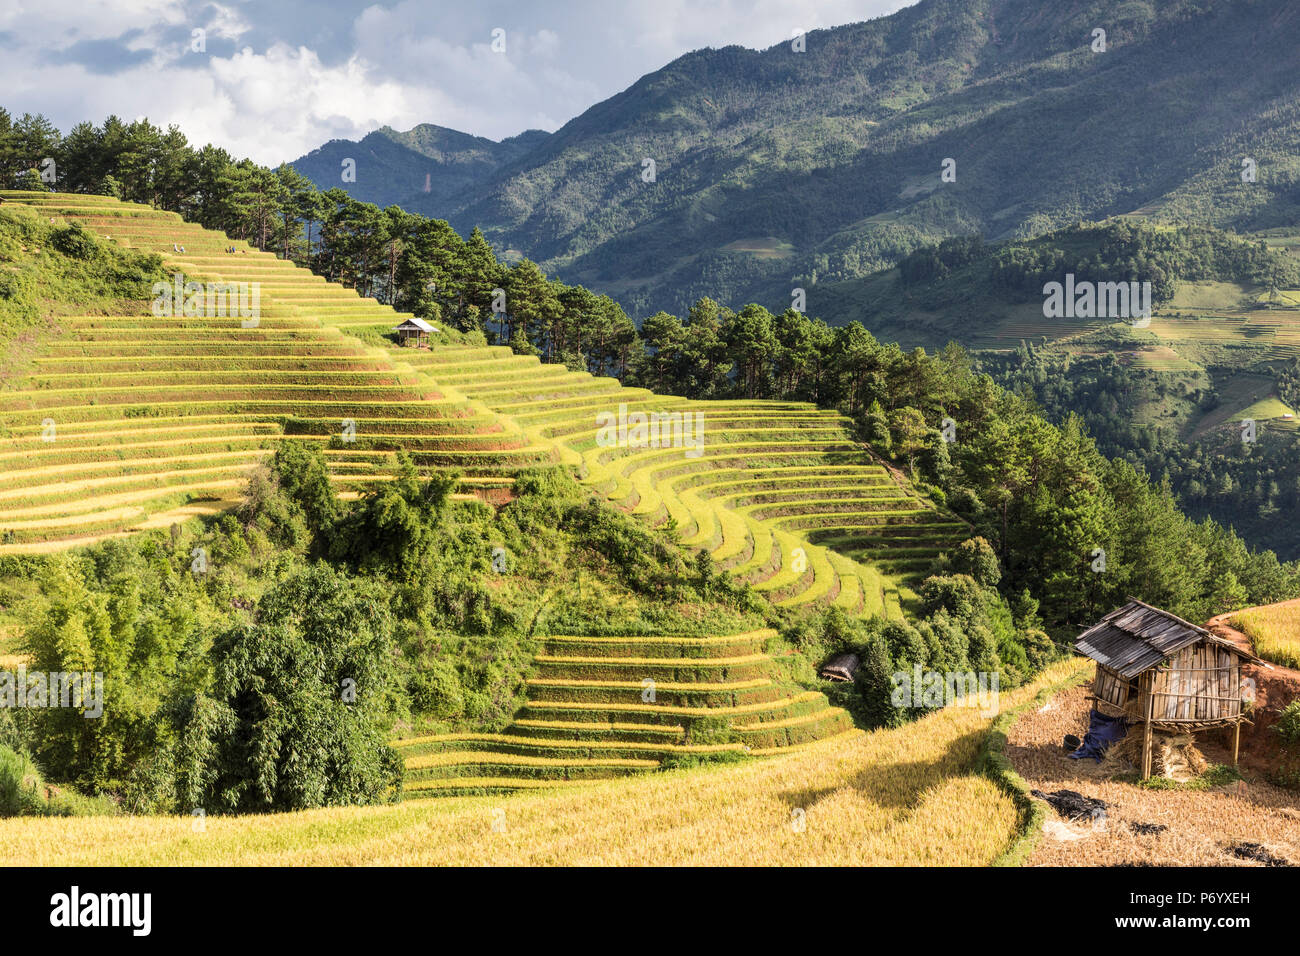 A stilt hut sits on a hillside of rice terraces at harvest time, Mu Cang Chai Yen Bai Province, Vietnam, South-East Asia - Stock Image